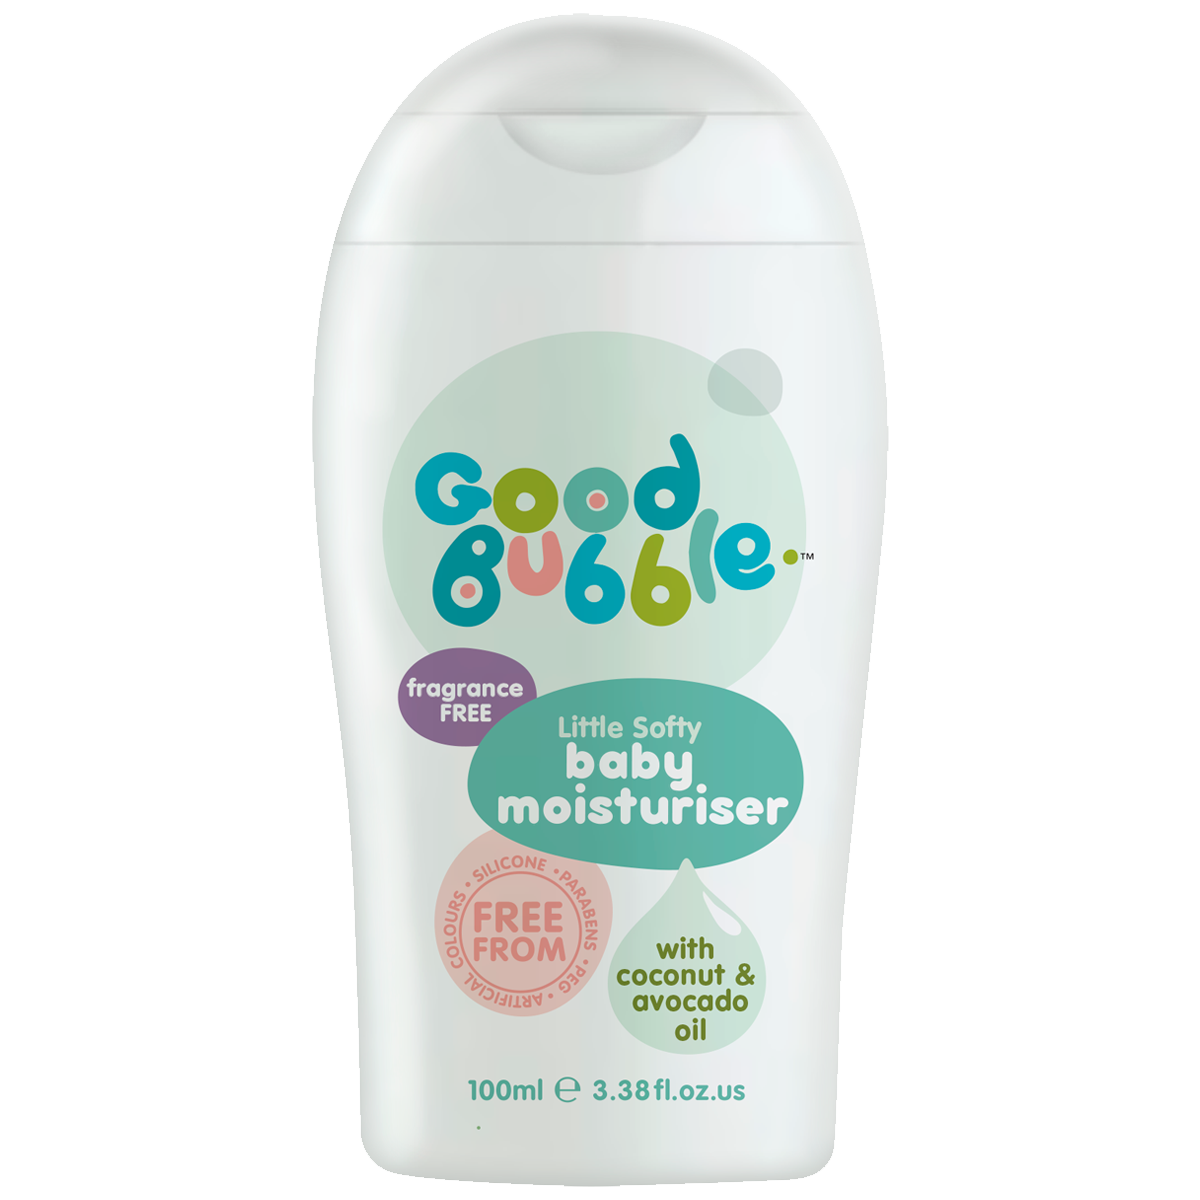 https://goodbubble.co.uk/uploads/images/little-softy-fragrance-free-new.png